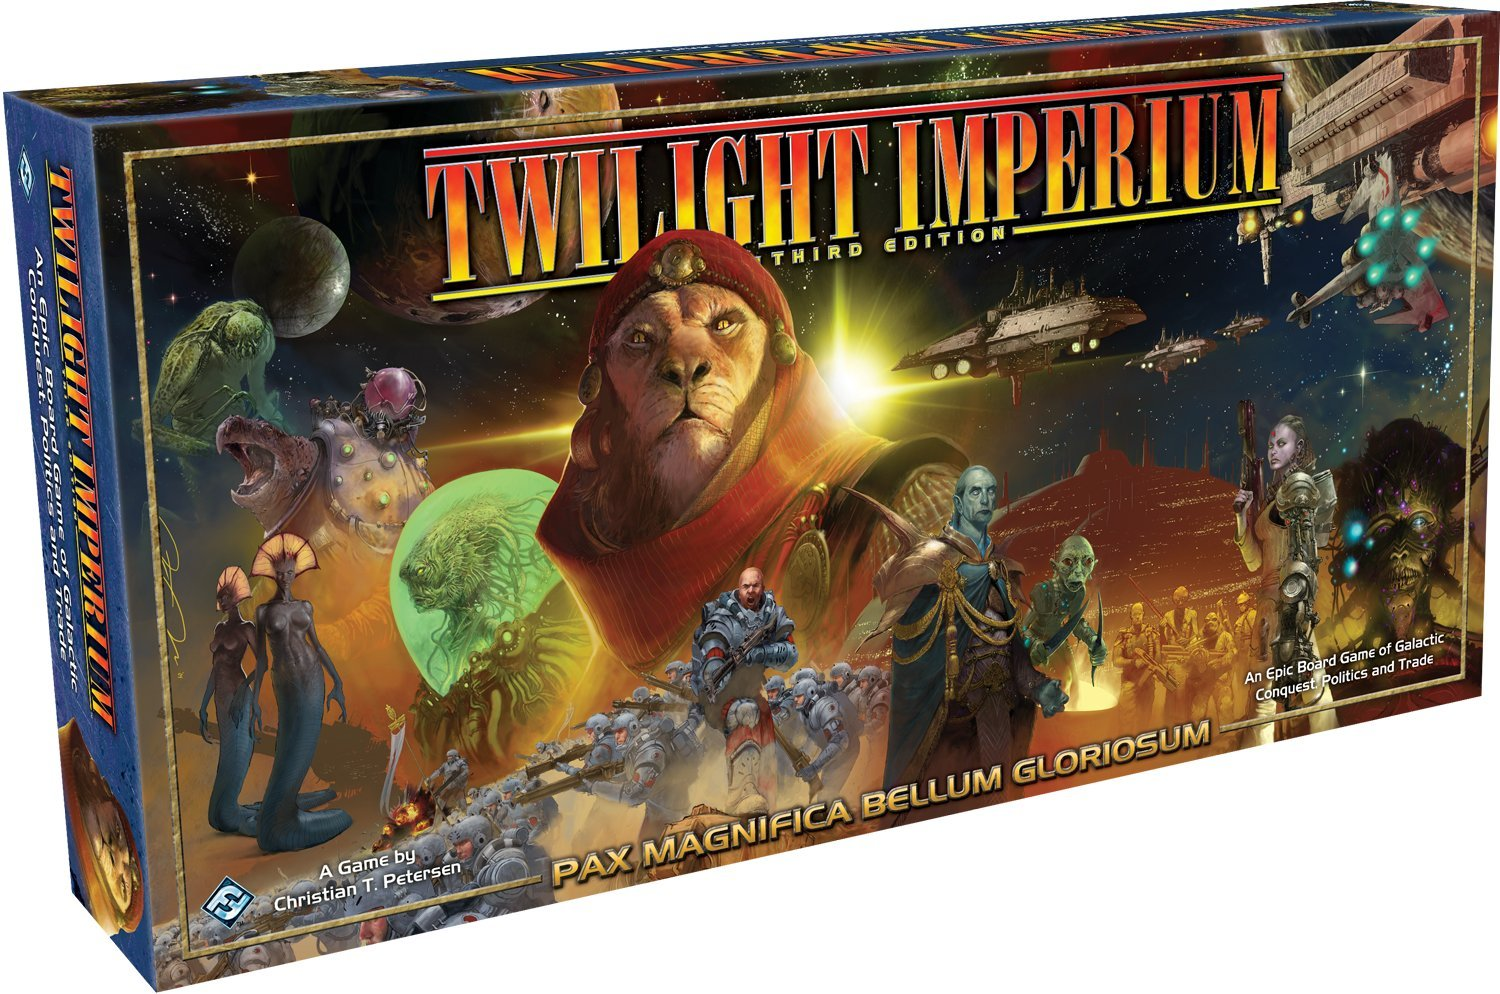 Role Playing /& Fantasy Games//Puzzles General Games /& Activities Fantasy Flight Games Twilight Imperium 3rd Edition FFGTI03 Board Games Role Playing /& Fantasy Comics /& Graphic Novels Board Games Games /& Activities